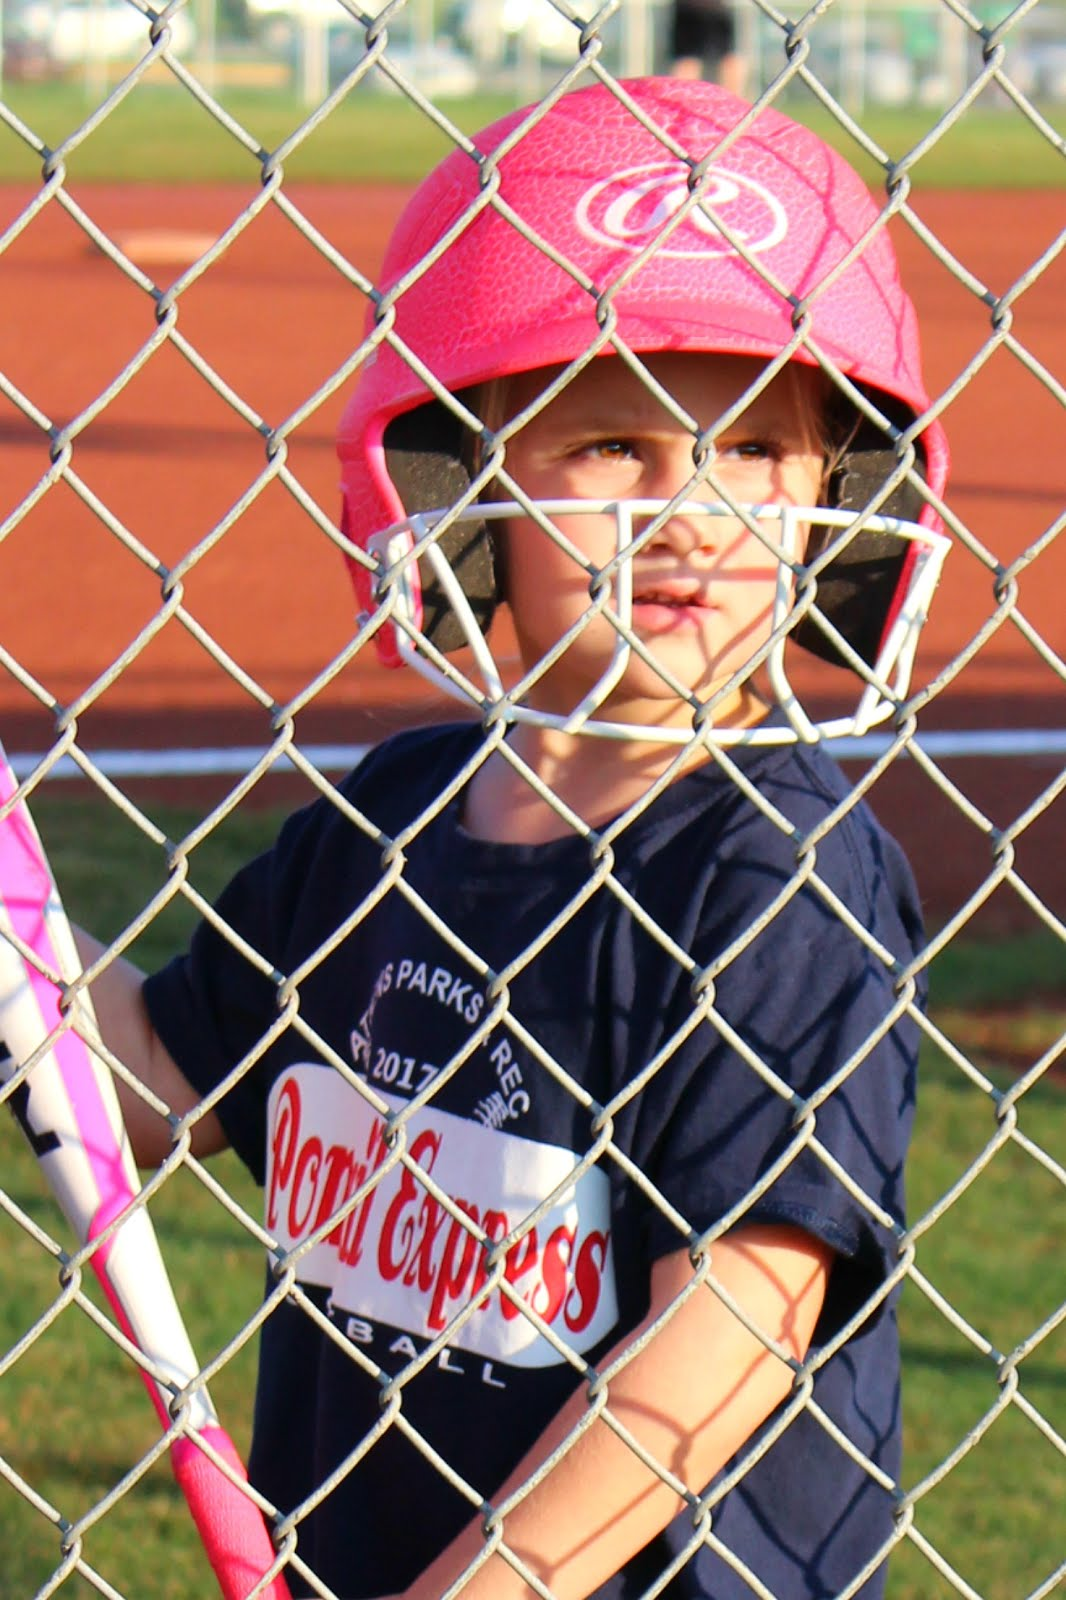 Preslie plays 1st Fall Softball